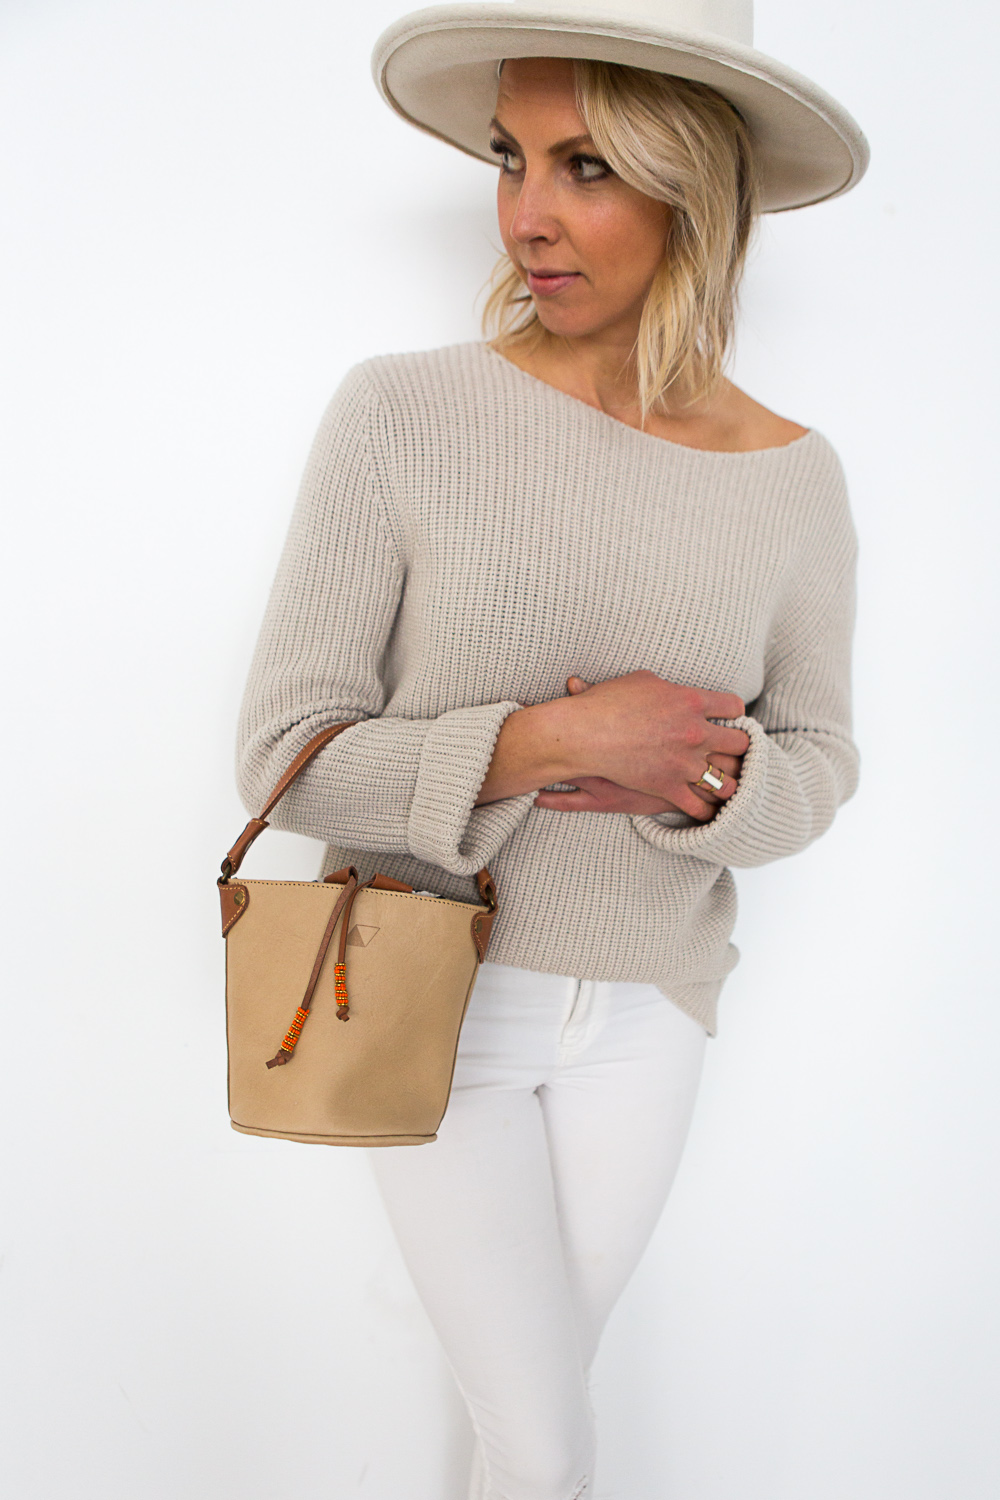 White jeans and a beige sweater paired with our    Mini Keri Bucket Bag   ,    Eliza Ring   , and a cream hat.